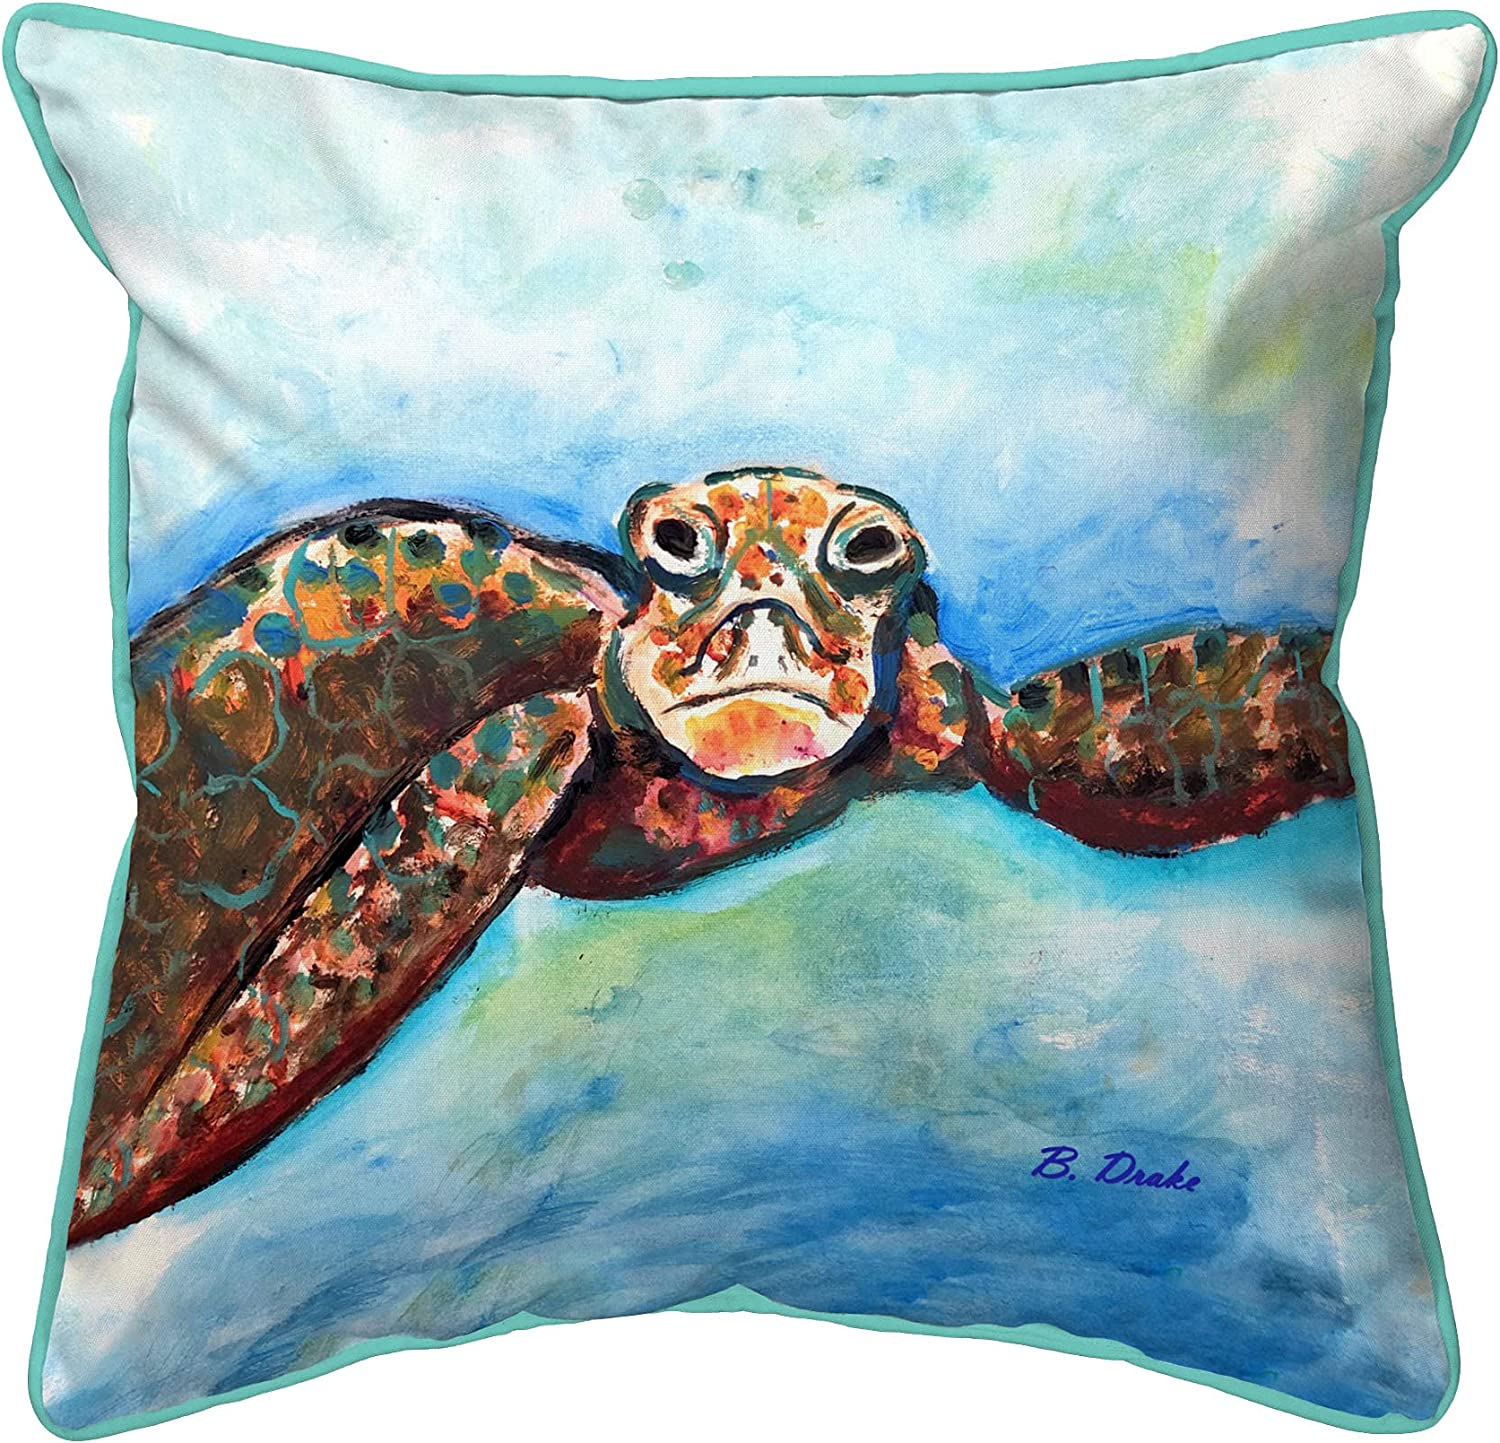 Betsy Drake Turtle Looking at Me Max 65% OFF Large Outdoor Pillow 18x Max 52% OFF Indoor